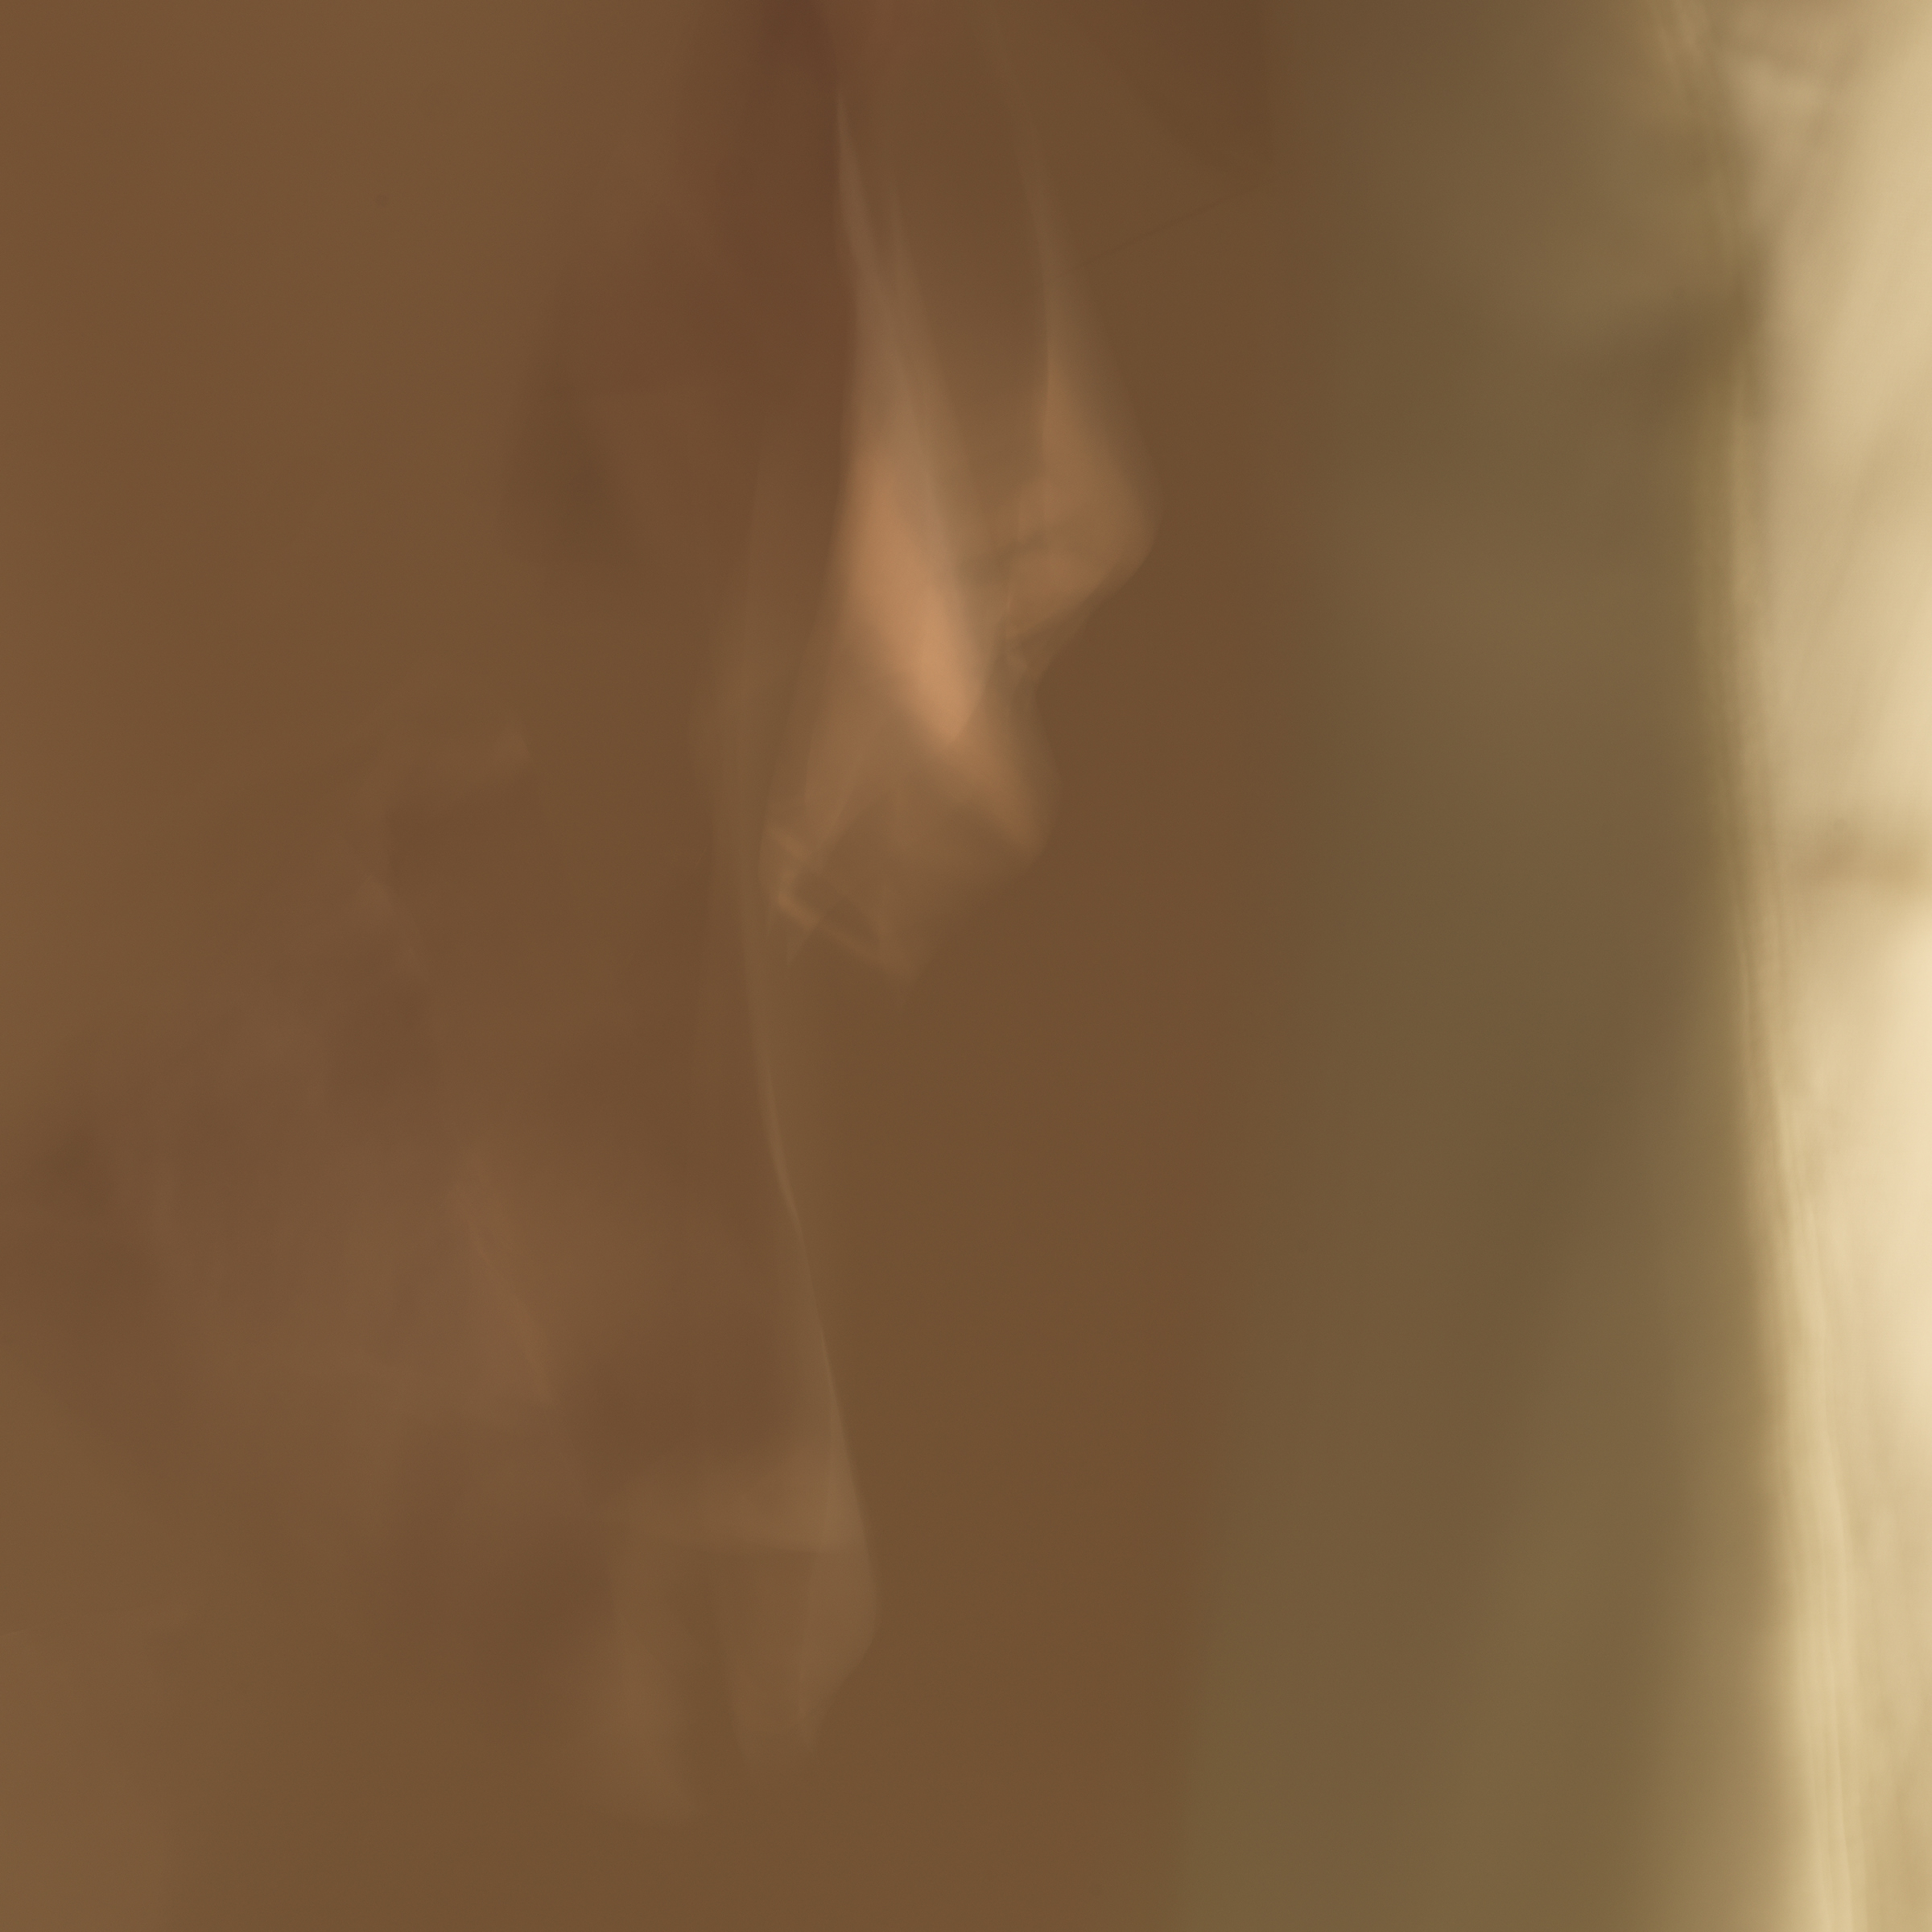 poet's pen, 8, 2014  20 x 20 in. Archival pigment print on Canson paper Edition of 5